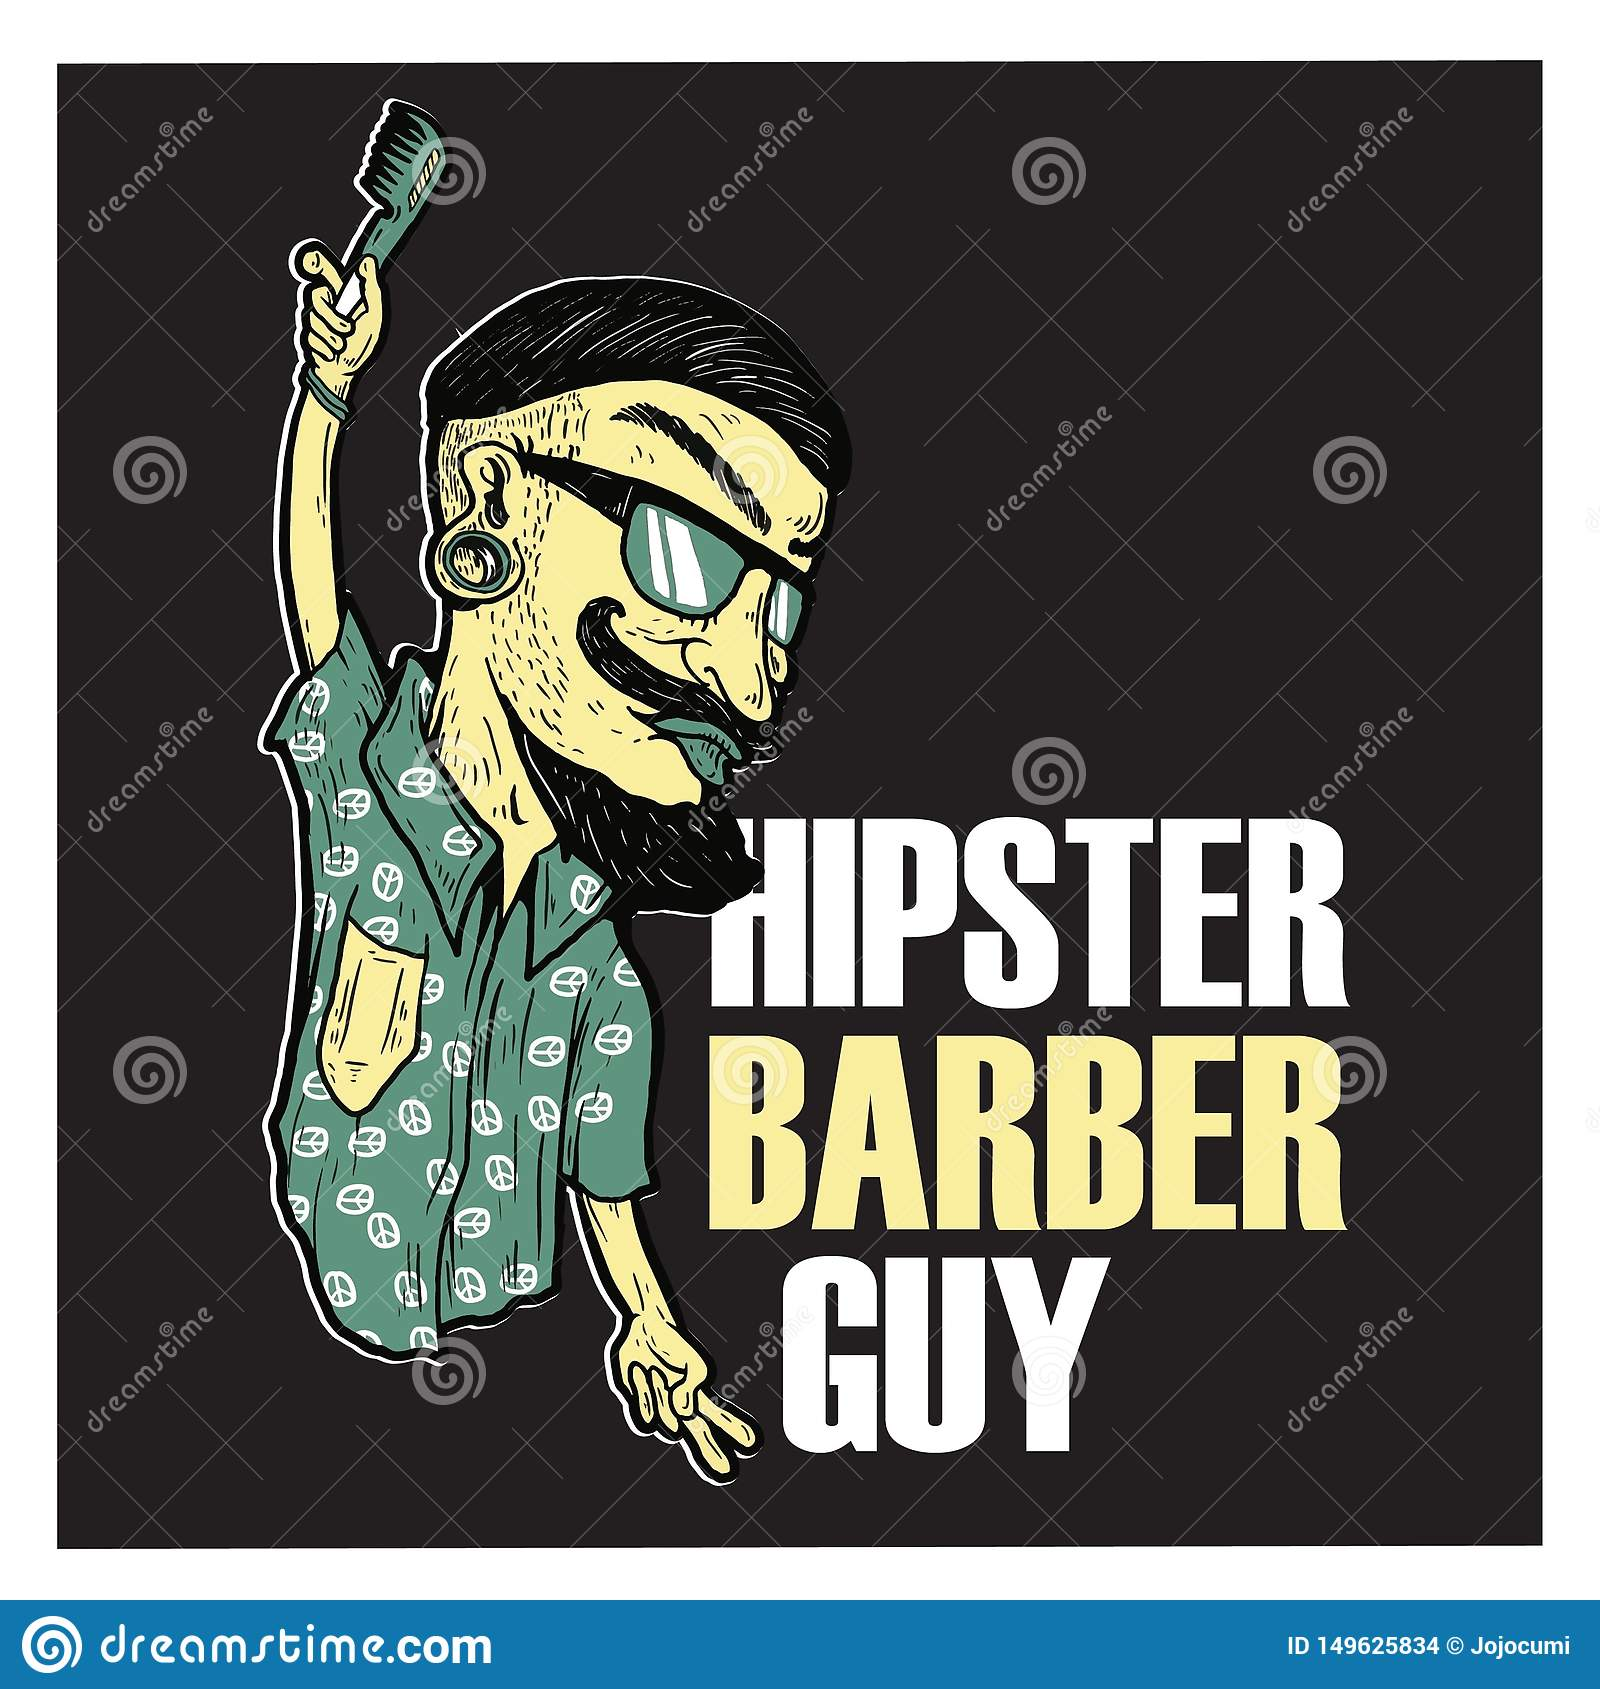 Het embleem van Hipsterbarber guy illustration cartoon